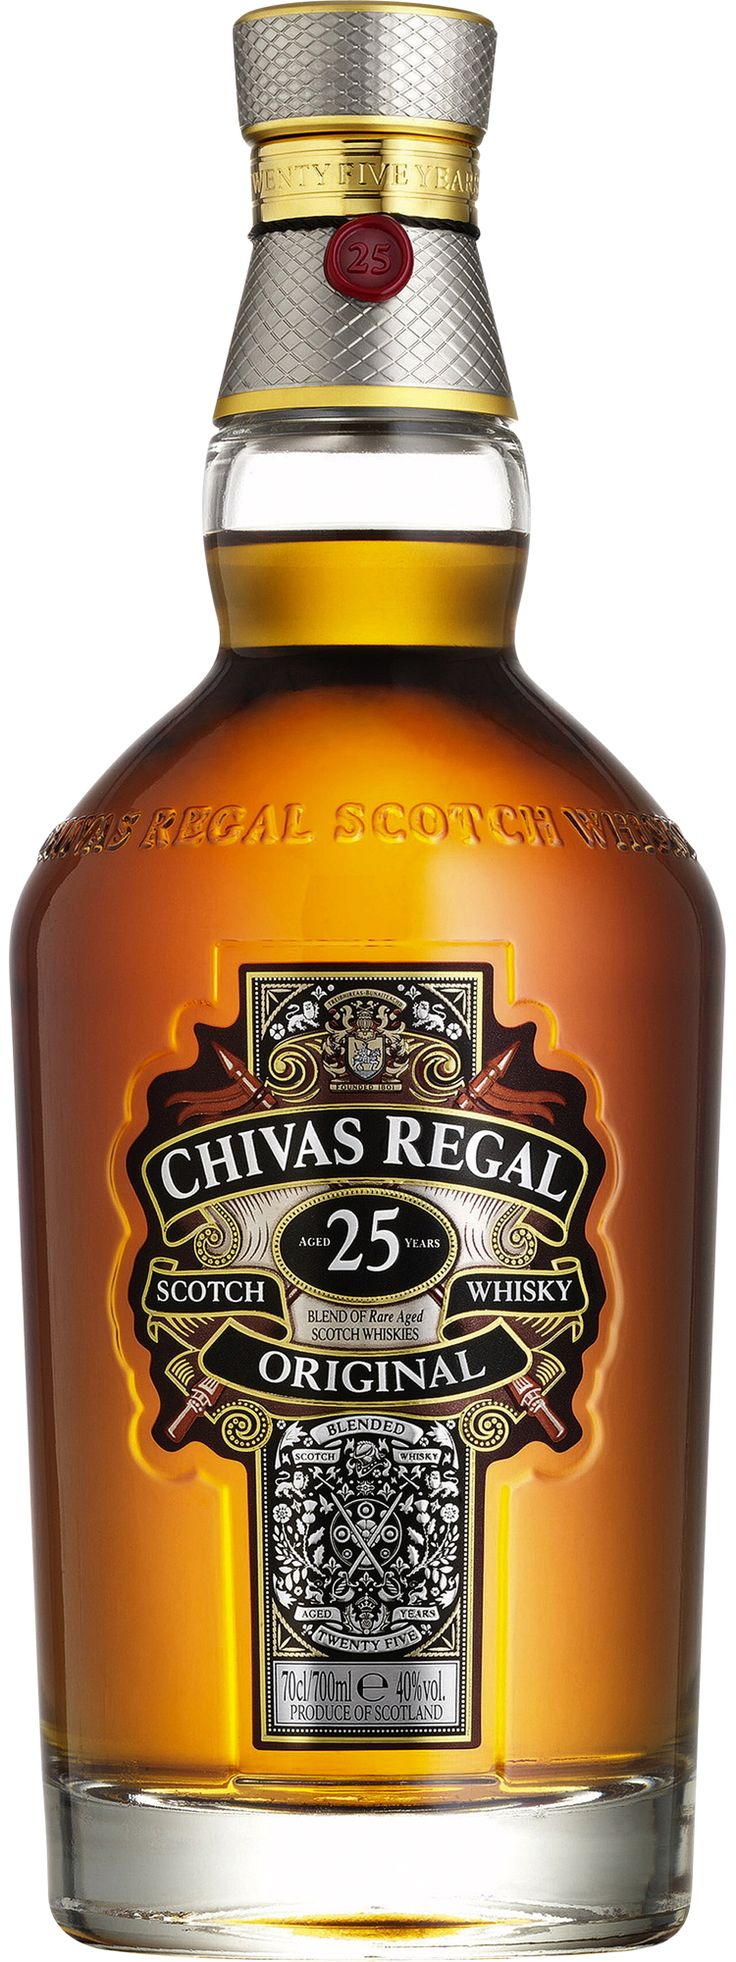 Chivas Regal Whisky Chivas Regal 12 Year Old Blended Scotch Whisky